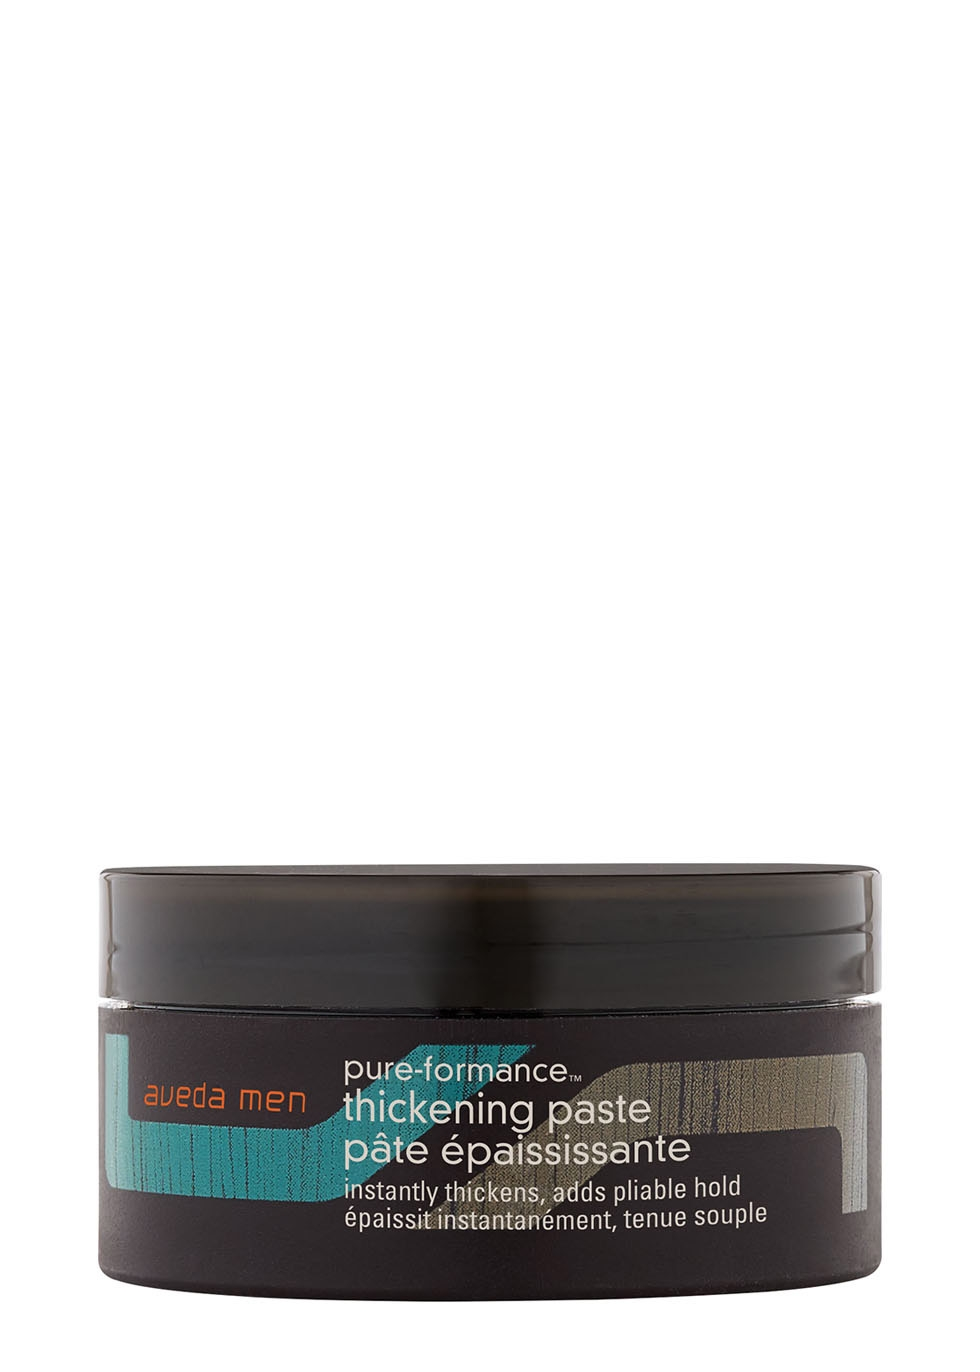 Pure-formance Thickening Paste 75ml